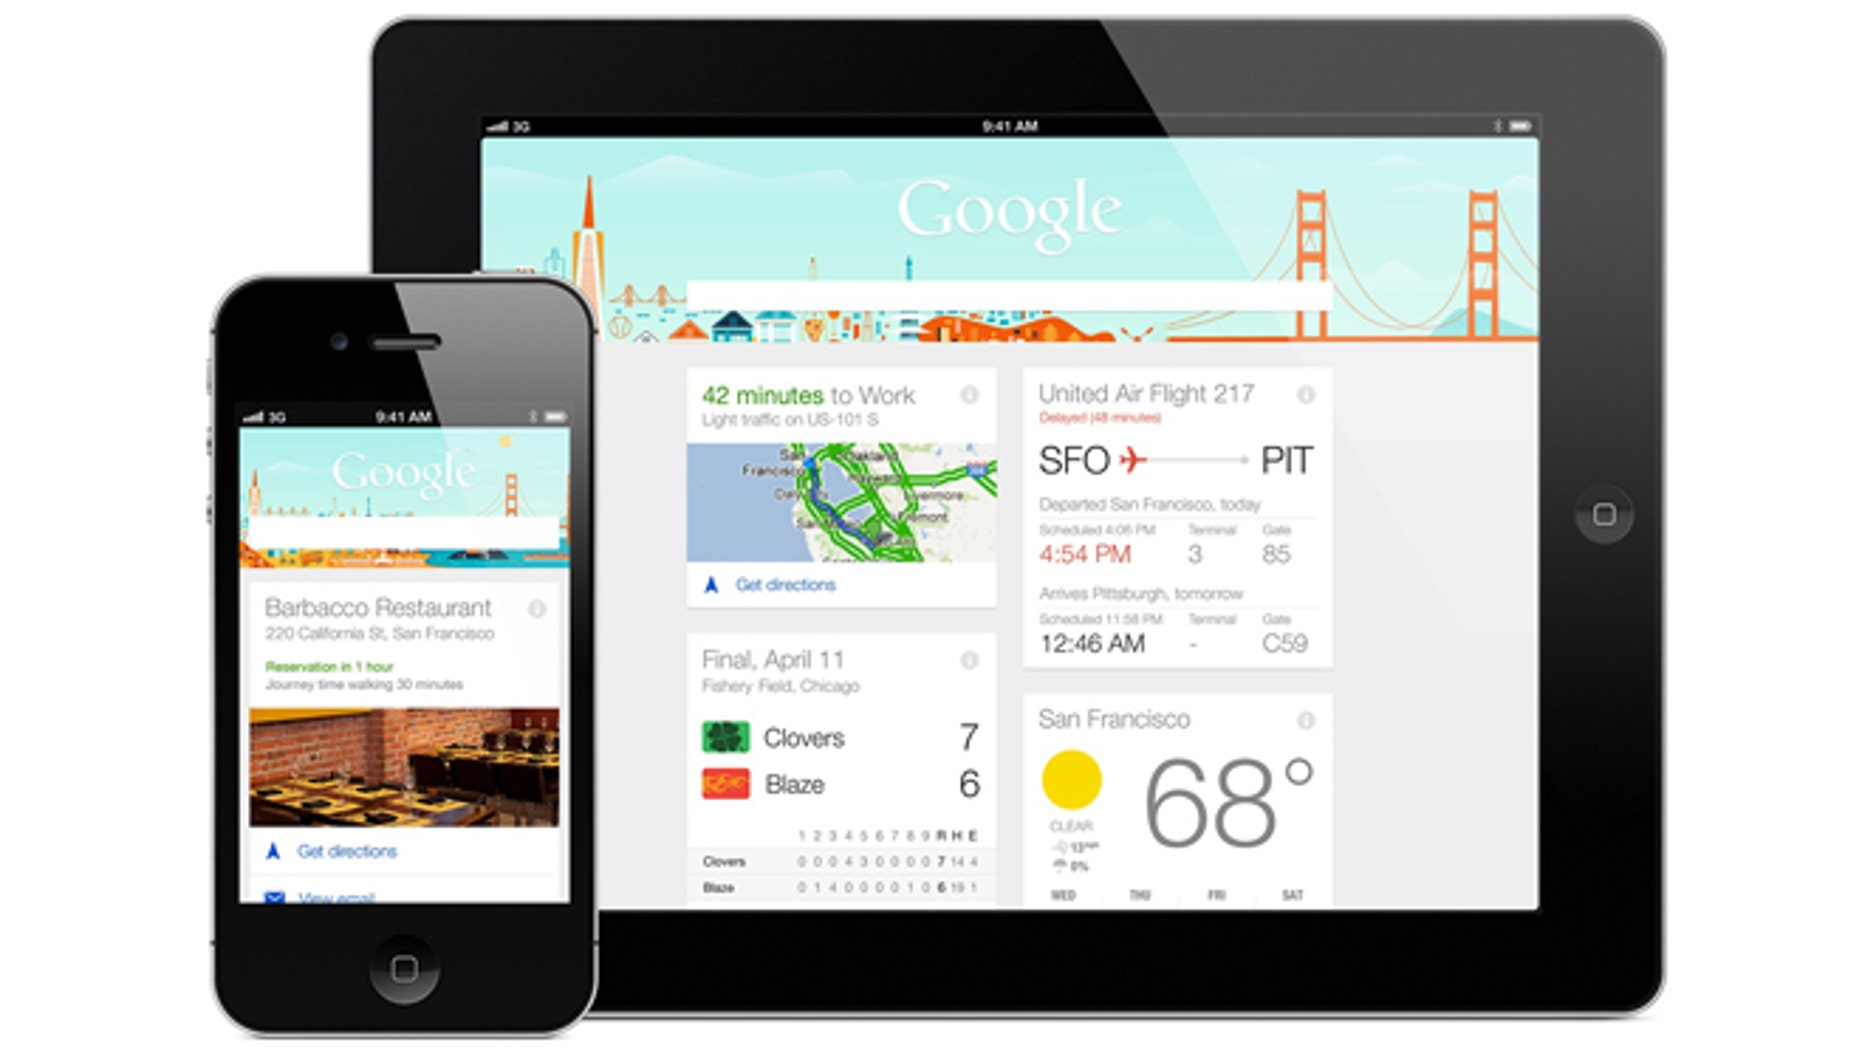 Apr. 29, 2013: Google Now, the search giant's answer to Apple's Siri, has arrived for iPhones and iPads.